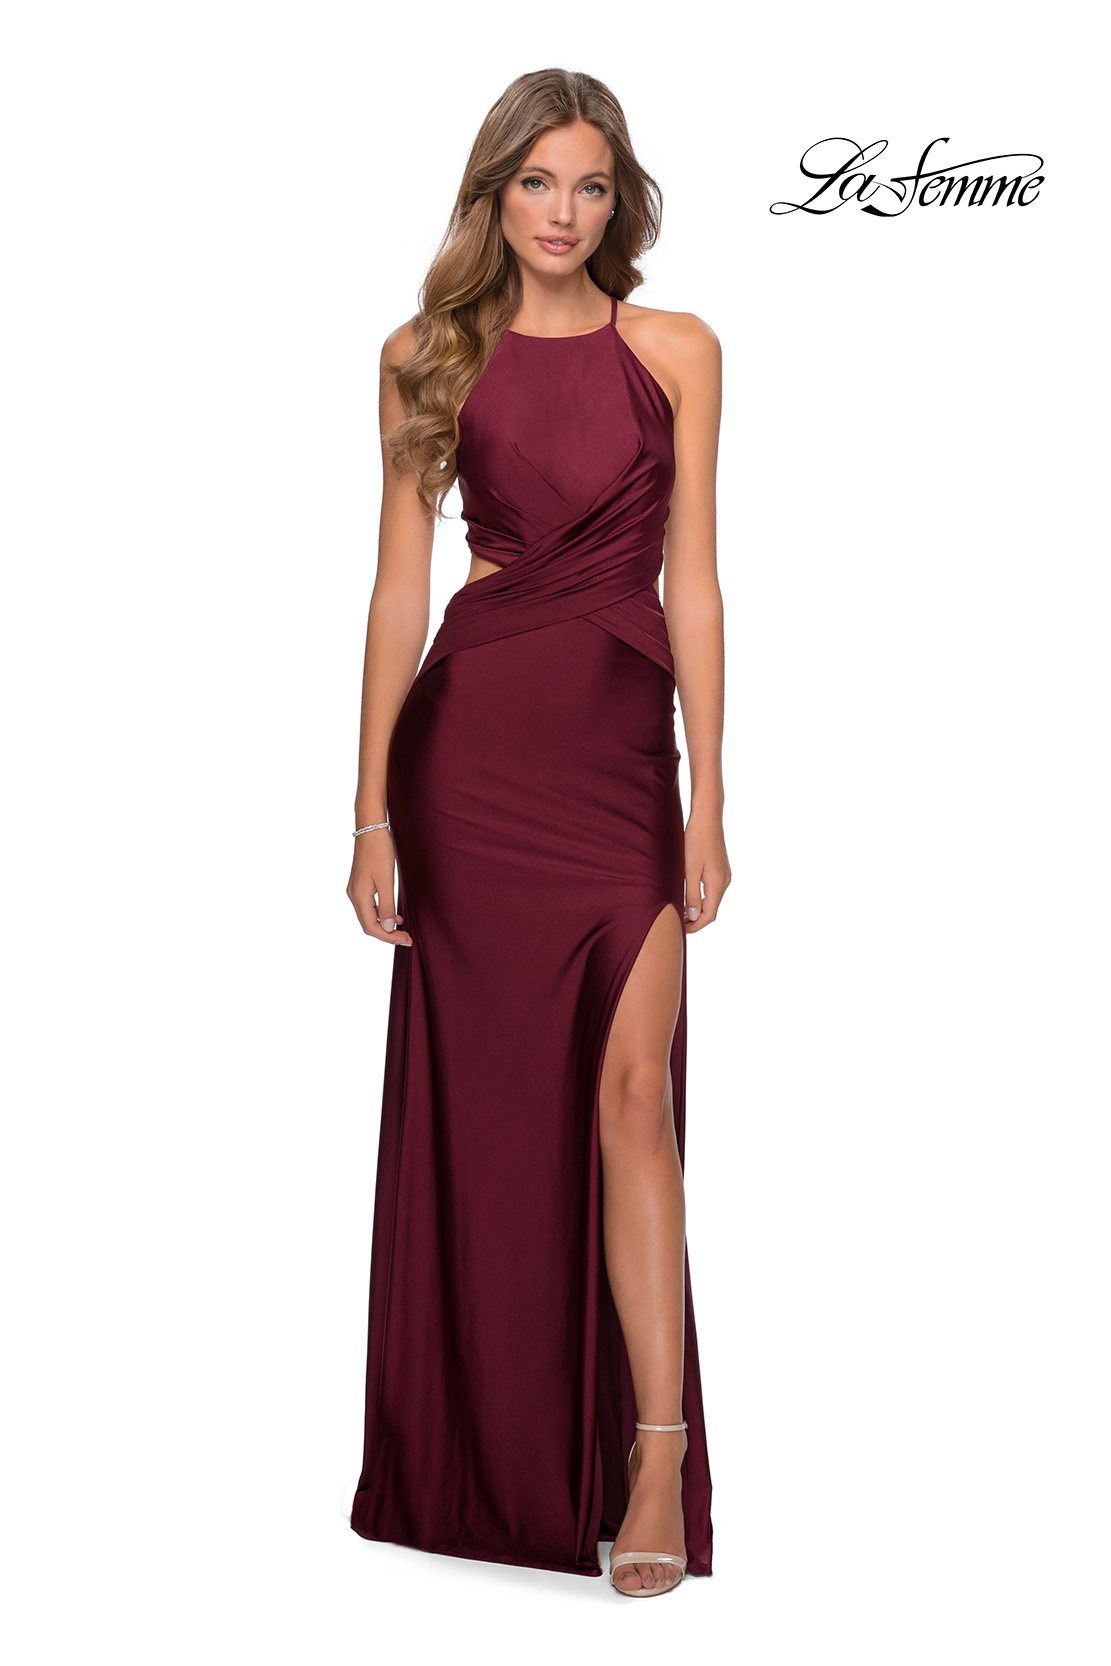 La Femme 28834 prom dress images.  La Femme 28834 is available in these colors: Dark Berry, Royal Blue.